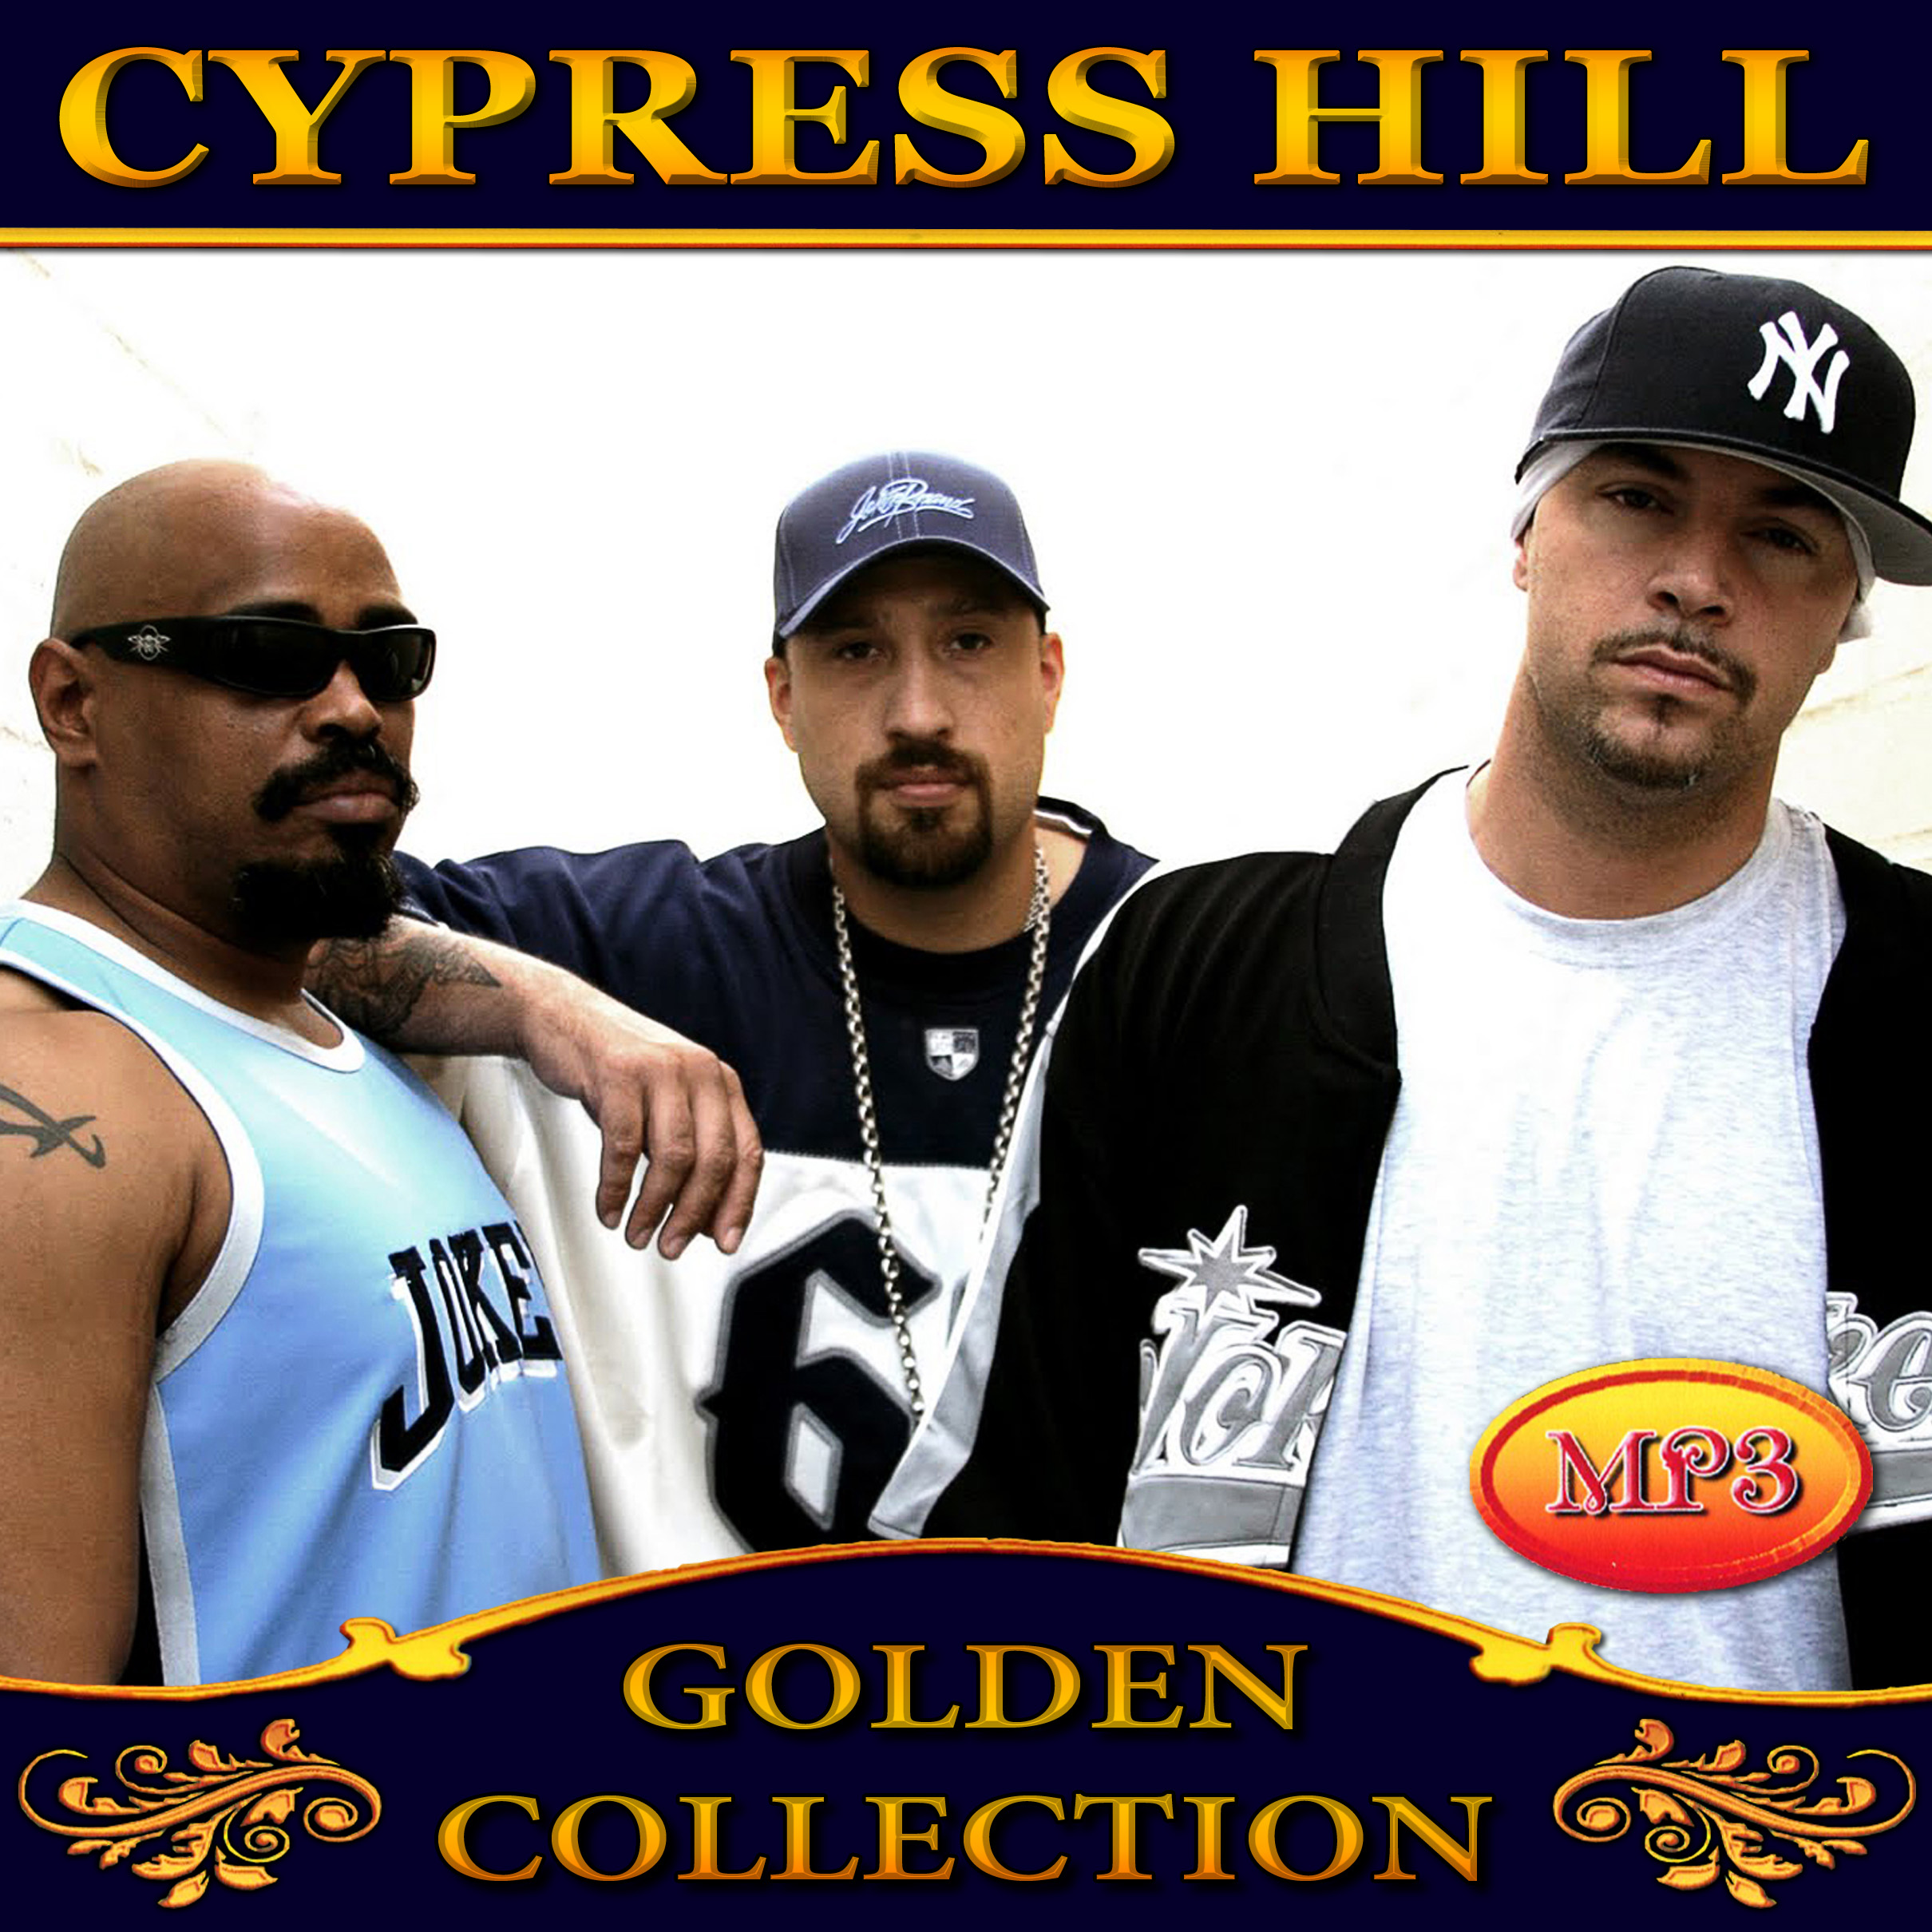 Cypress Hill [mp3]